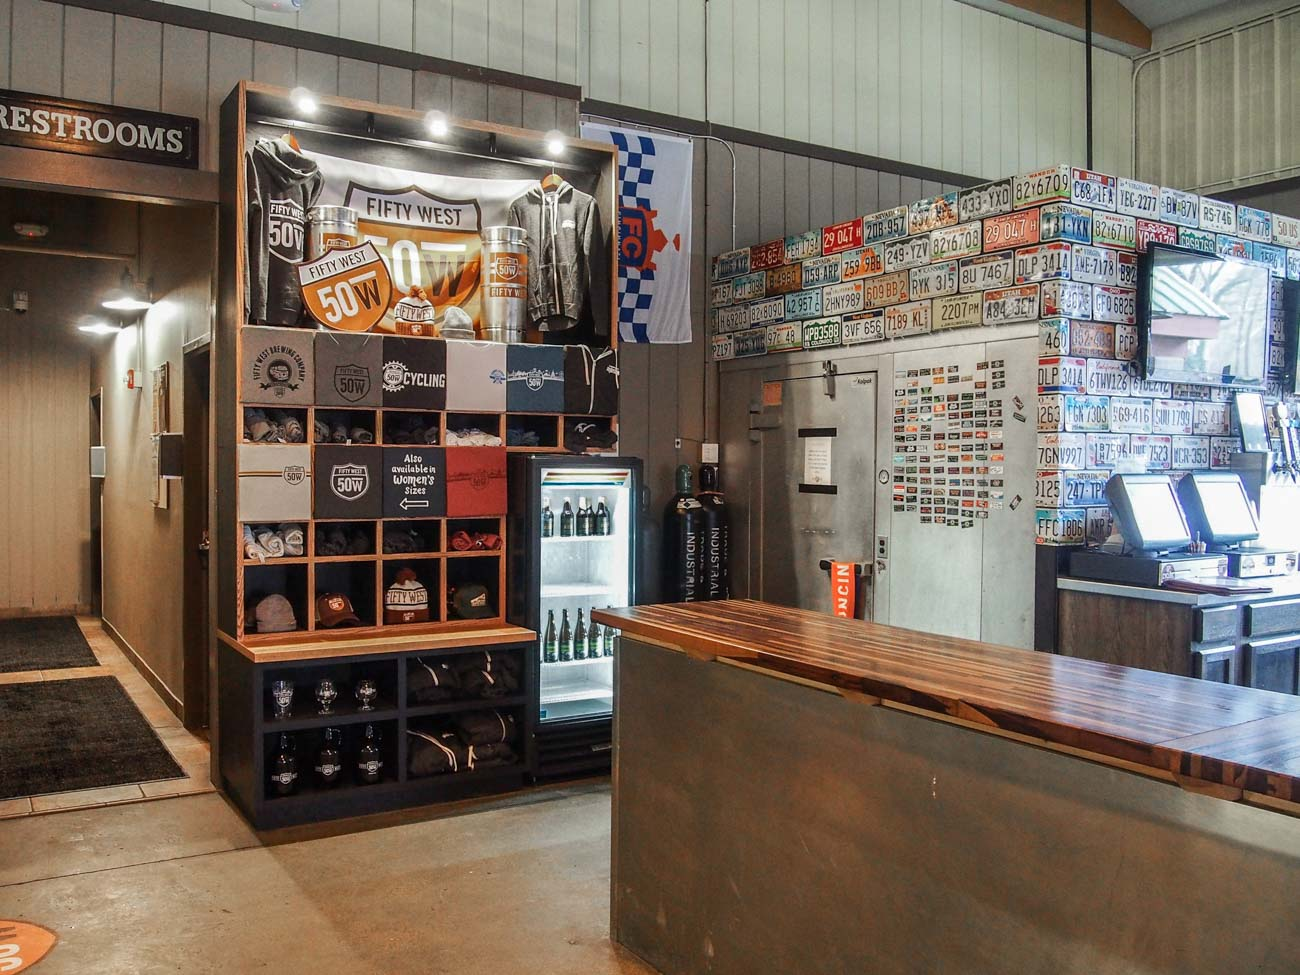 The merch displays at Fifty West Brewing Company / Image courtesy of Sediment Design // Published: 9.24.20